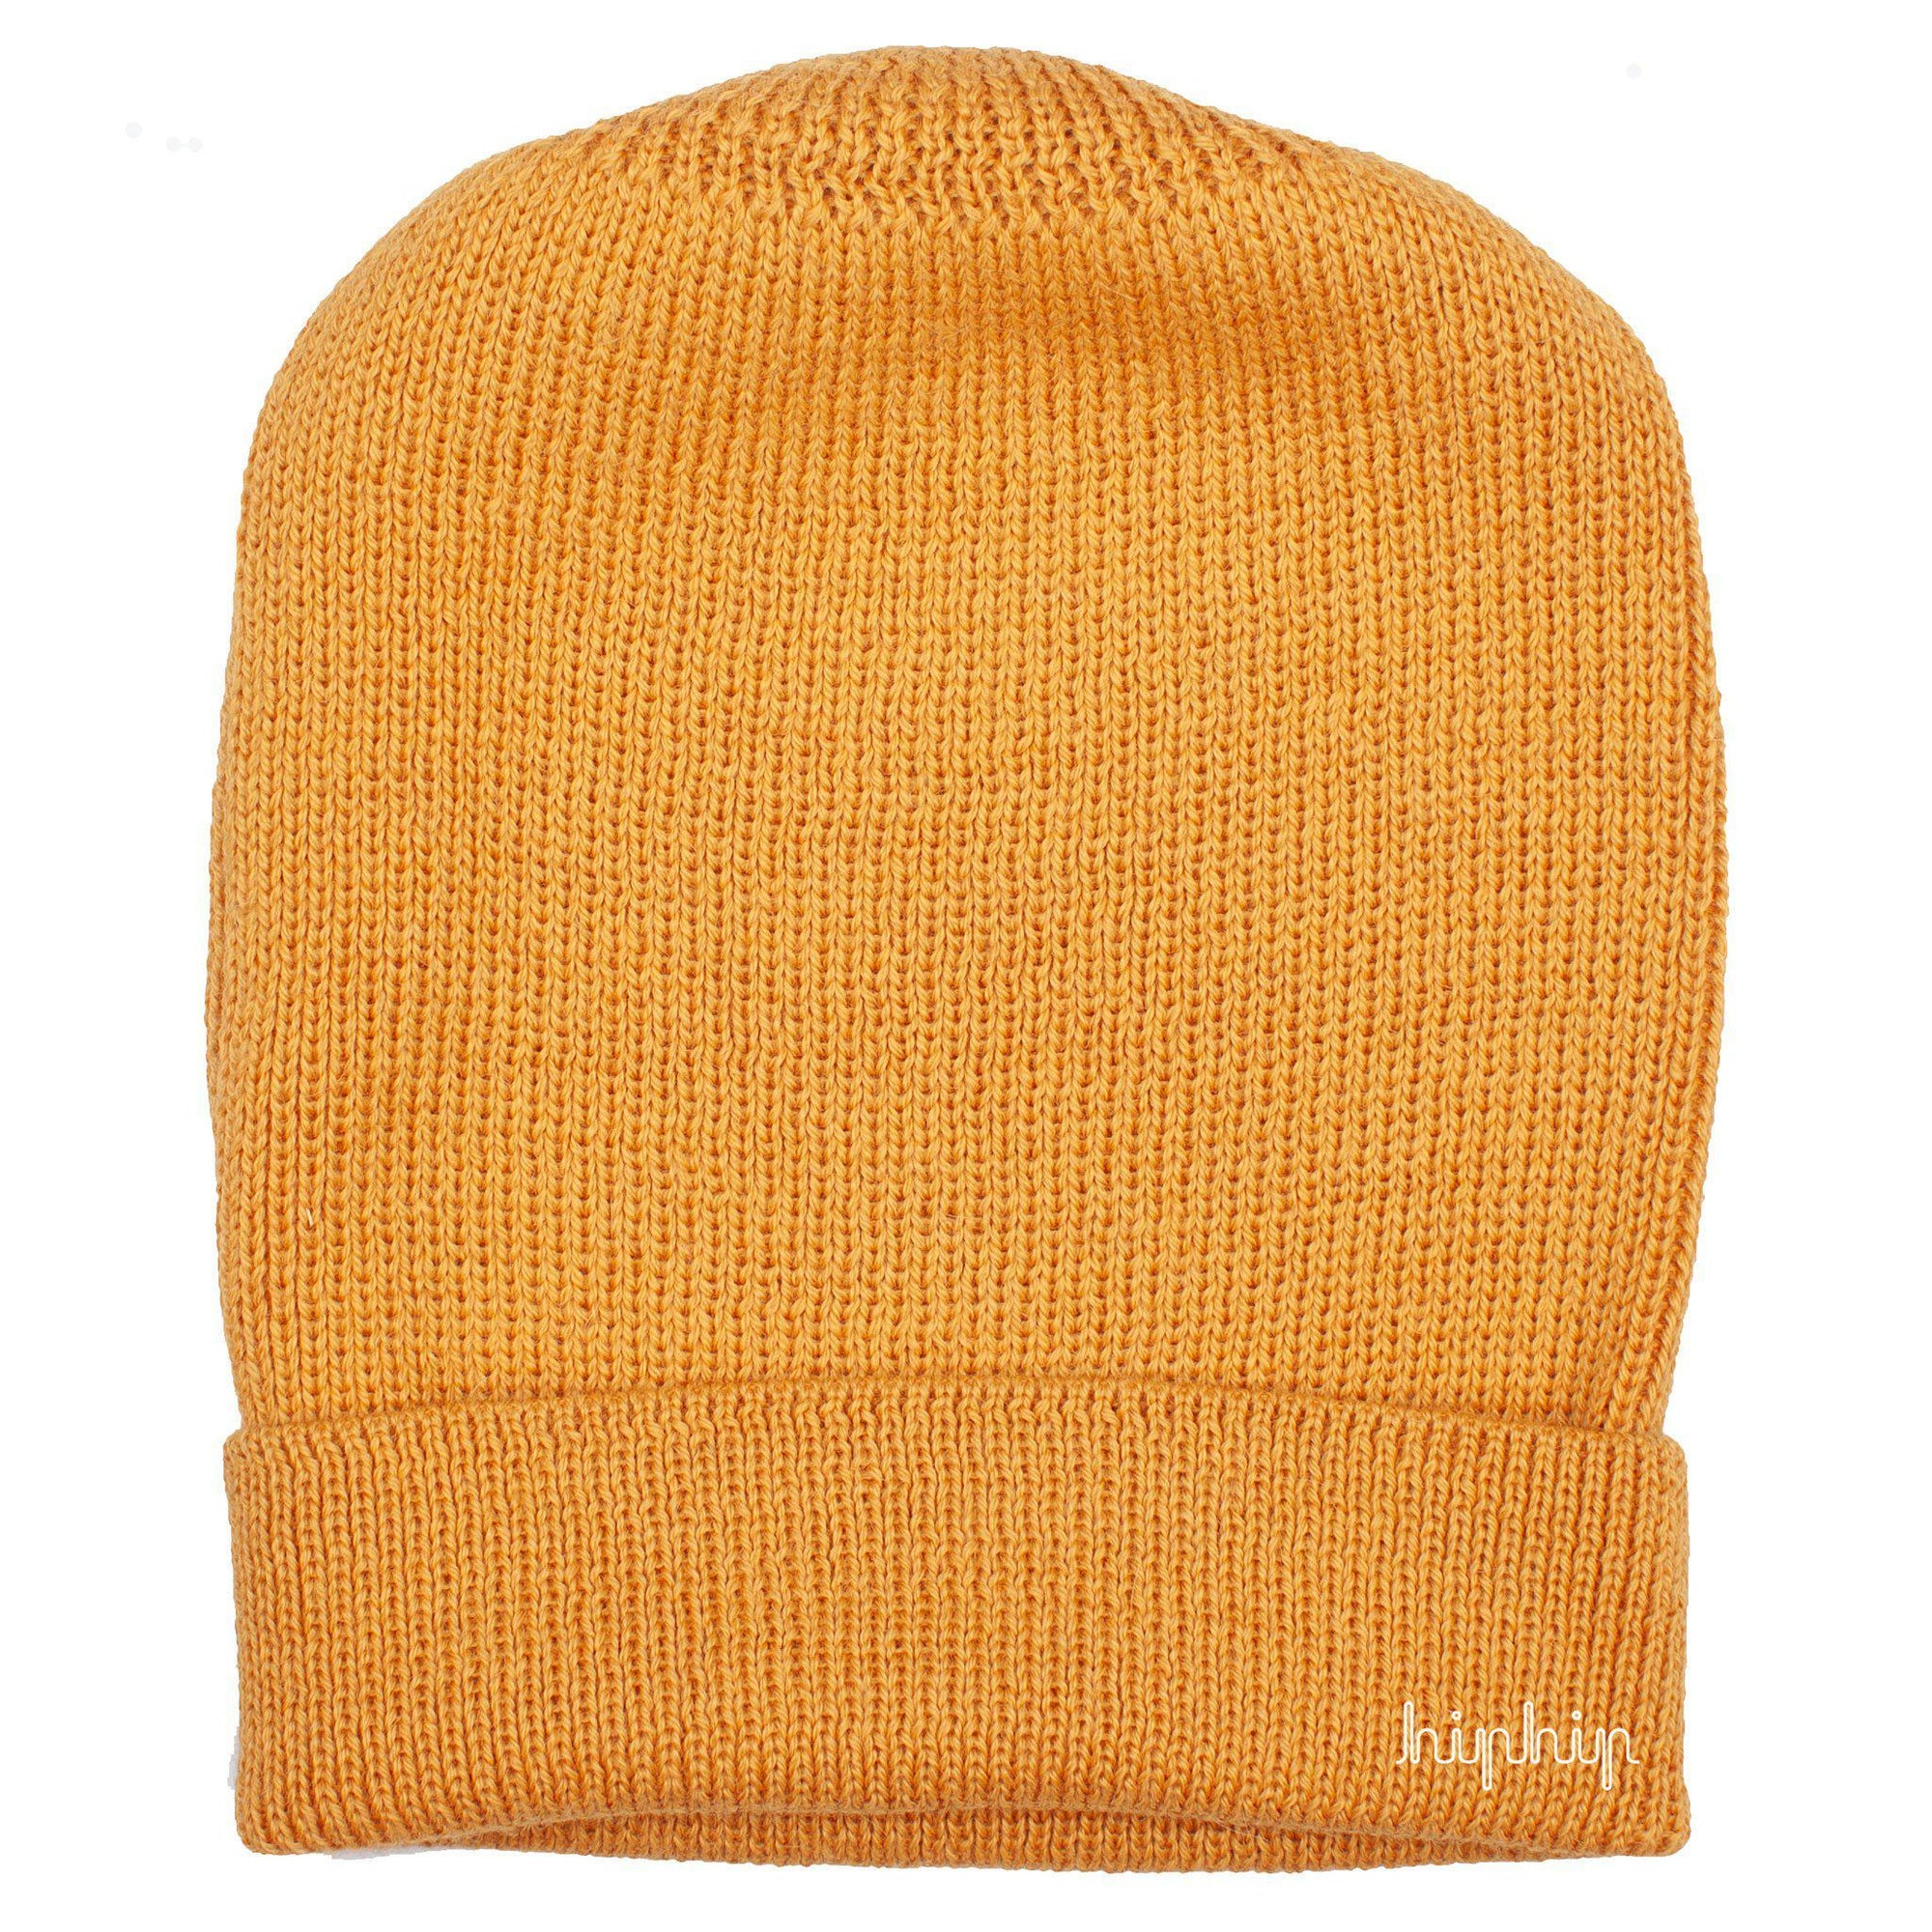 Caciula adulti De Colores baby alpaca Classic Rib - Corn Yellow-De Colores-HipHip.ro